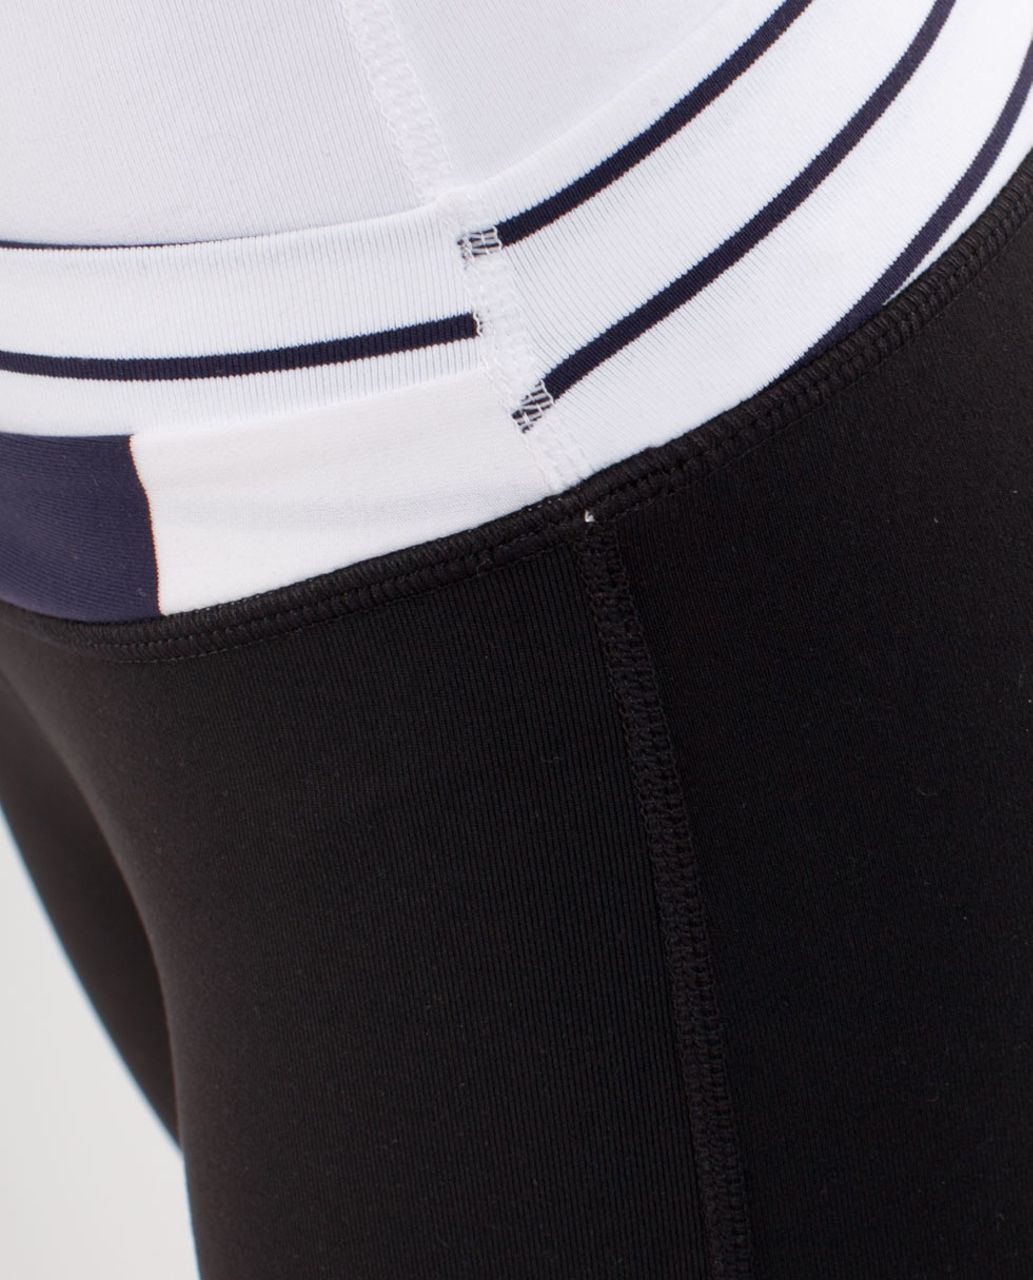 Lululemon Astro Pant (Regular) - Black /  White /  Quiet Stripe White Deep Indigo